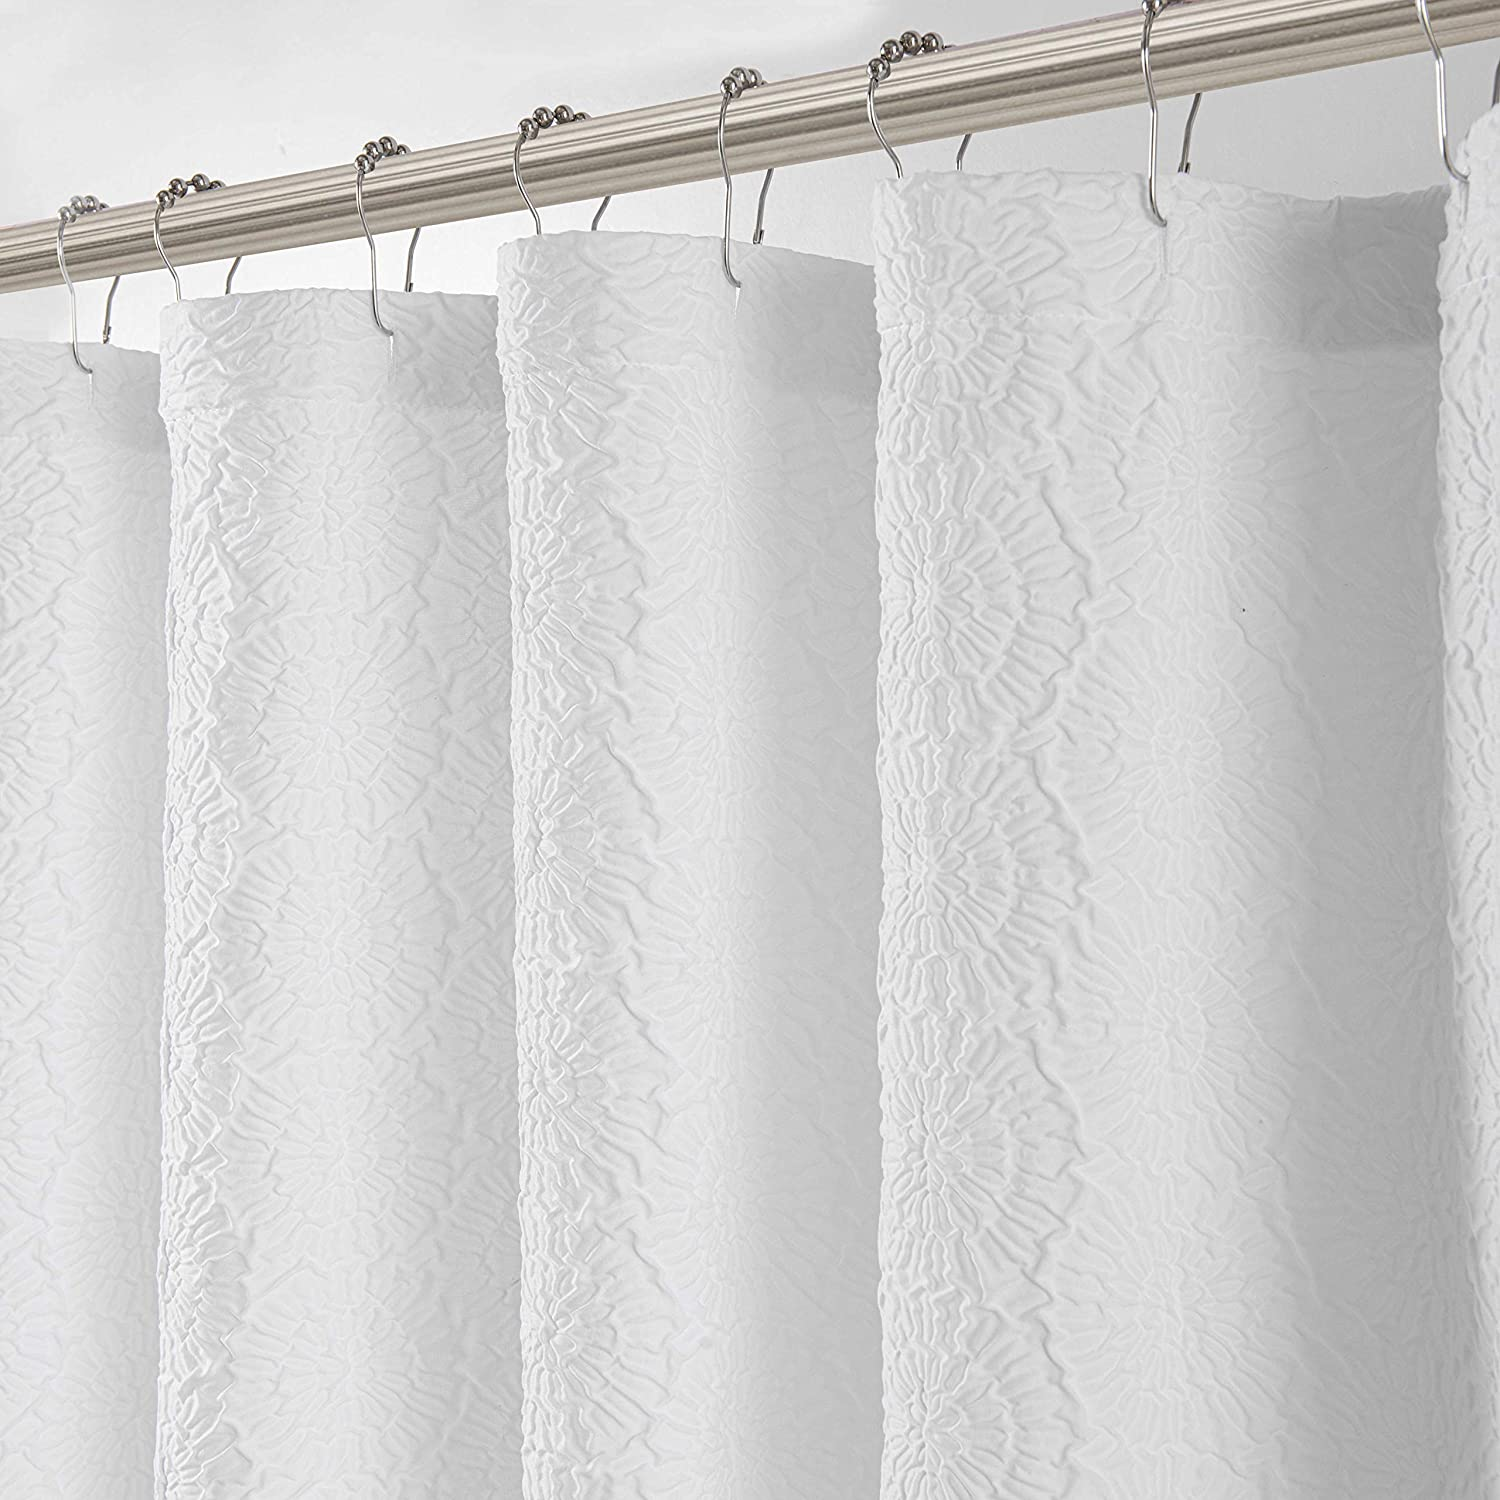 Max 53% OFF SALENEW very popular LORDTEX 3D Embossed Textured Matelassé Shower Curtains fo Fabric